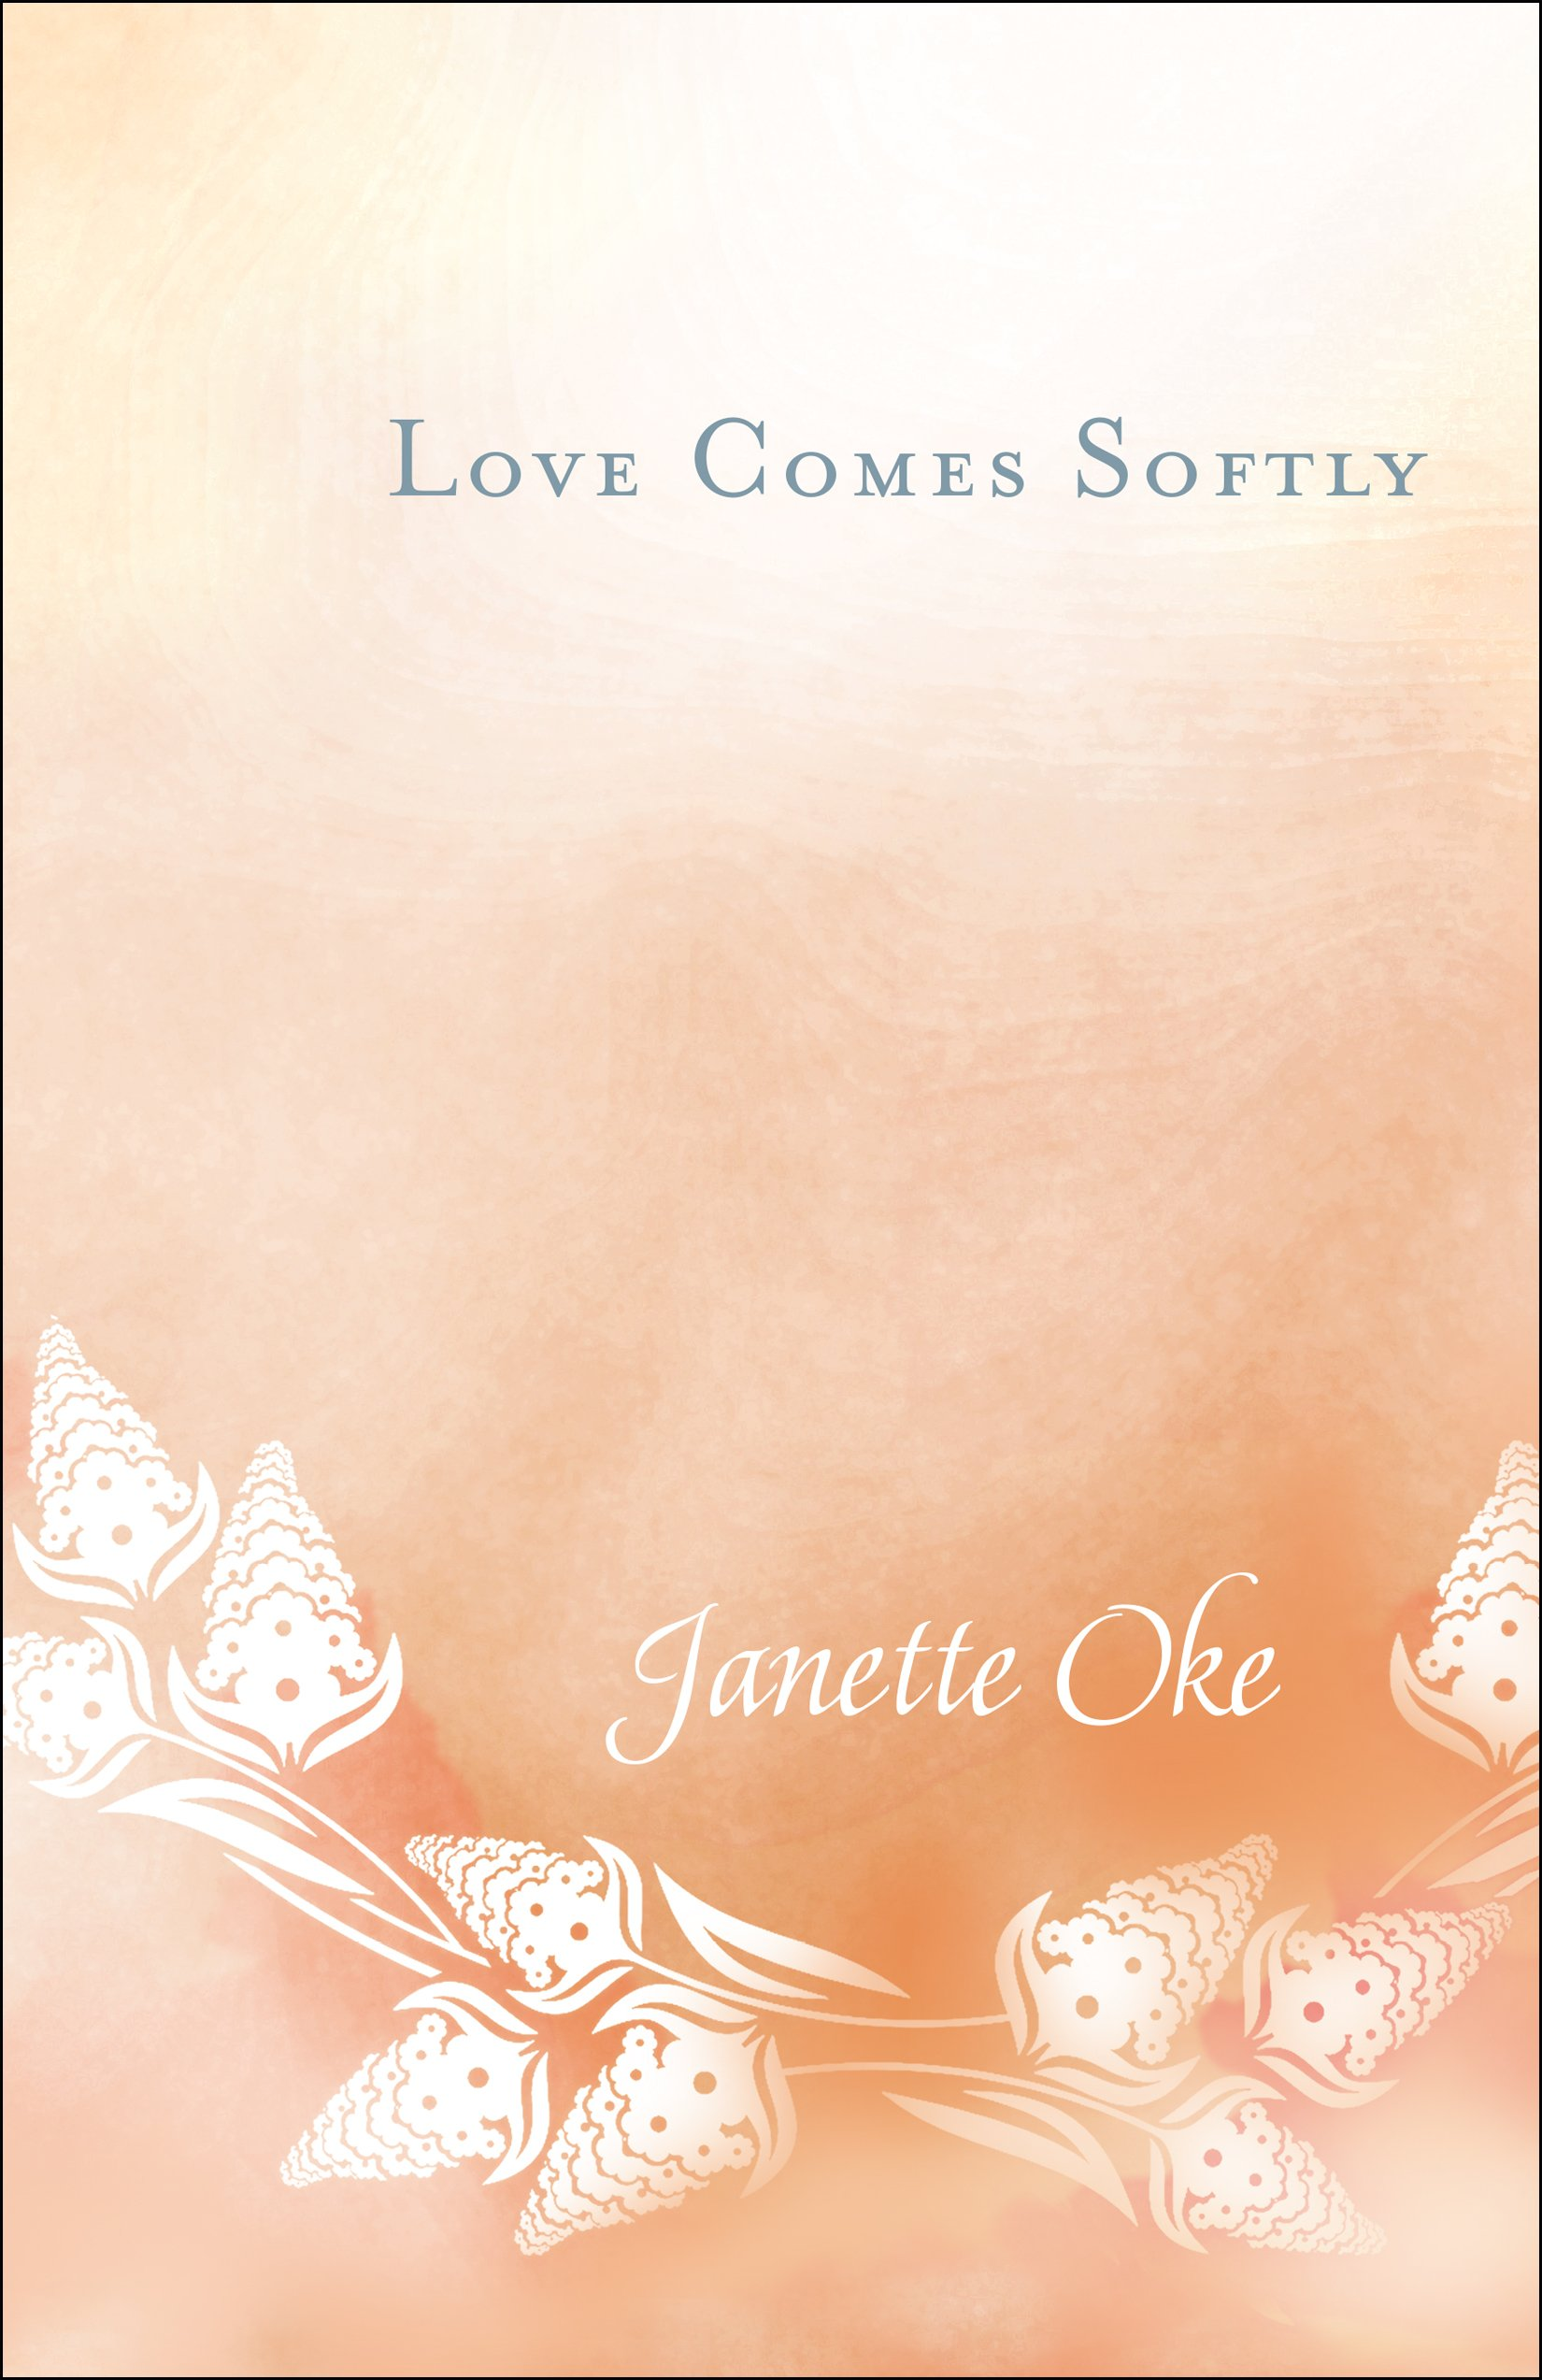 love comes softly limited